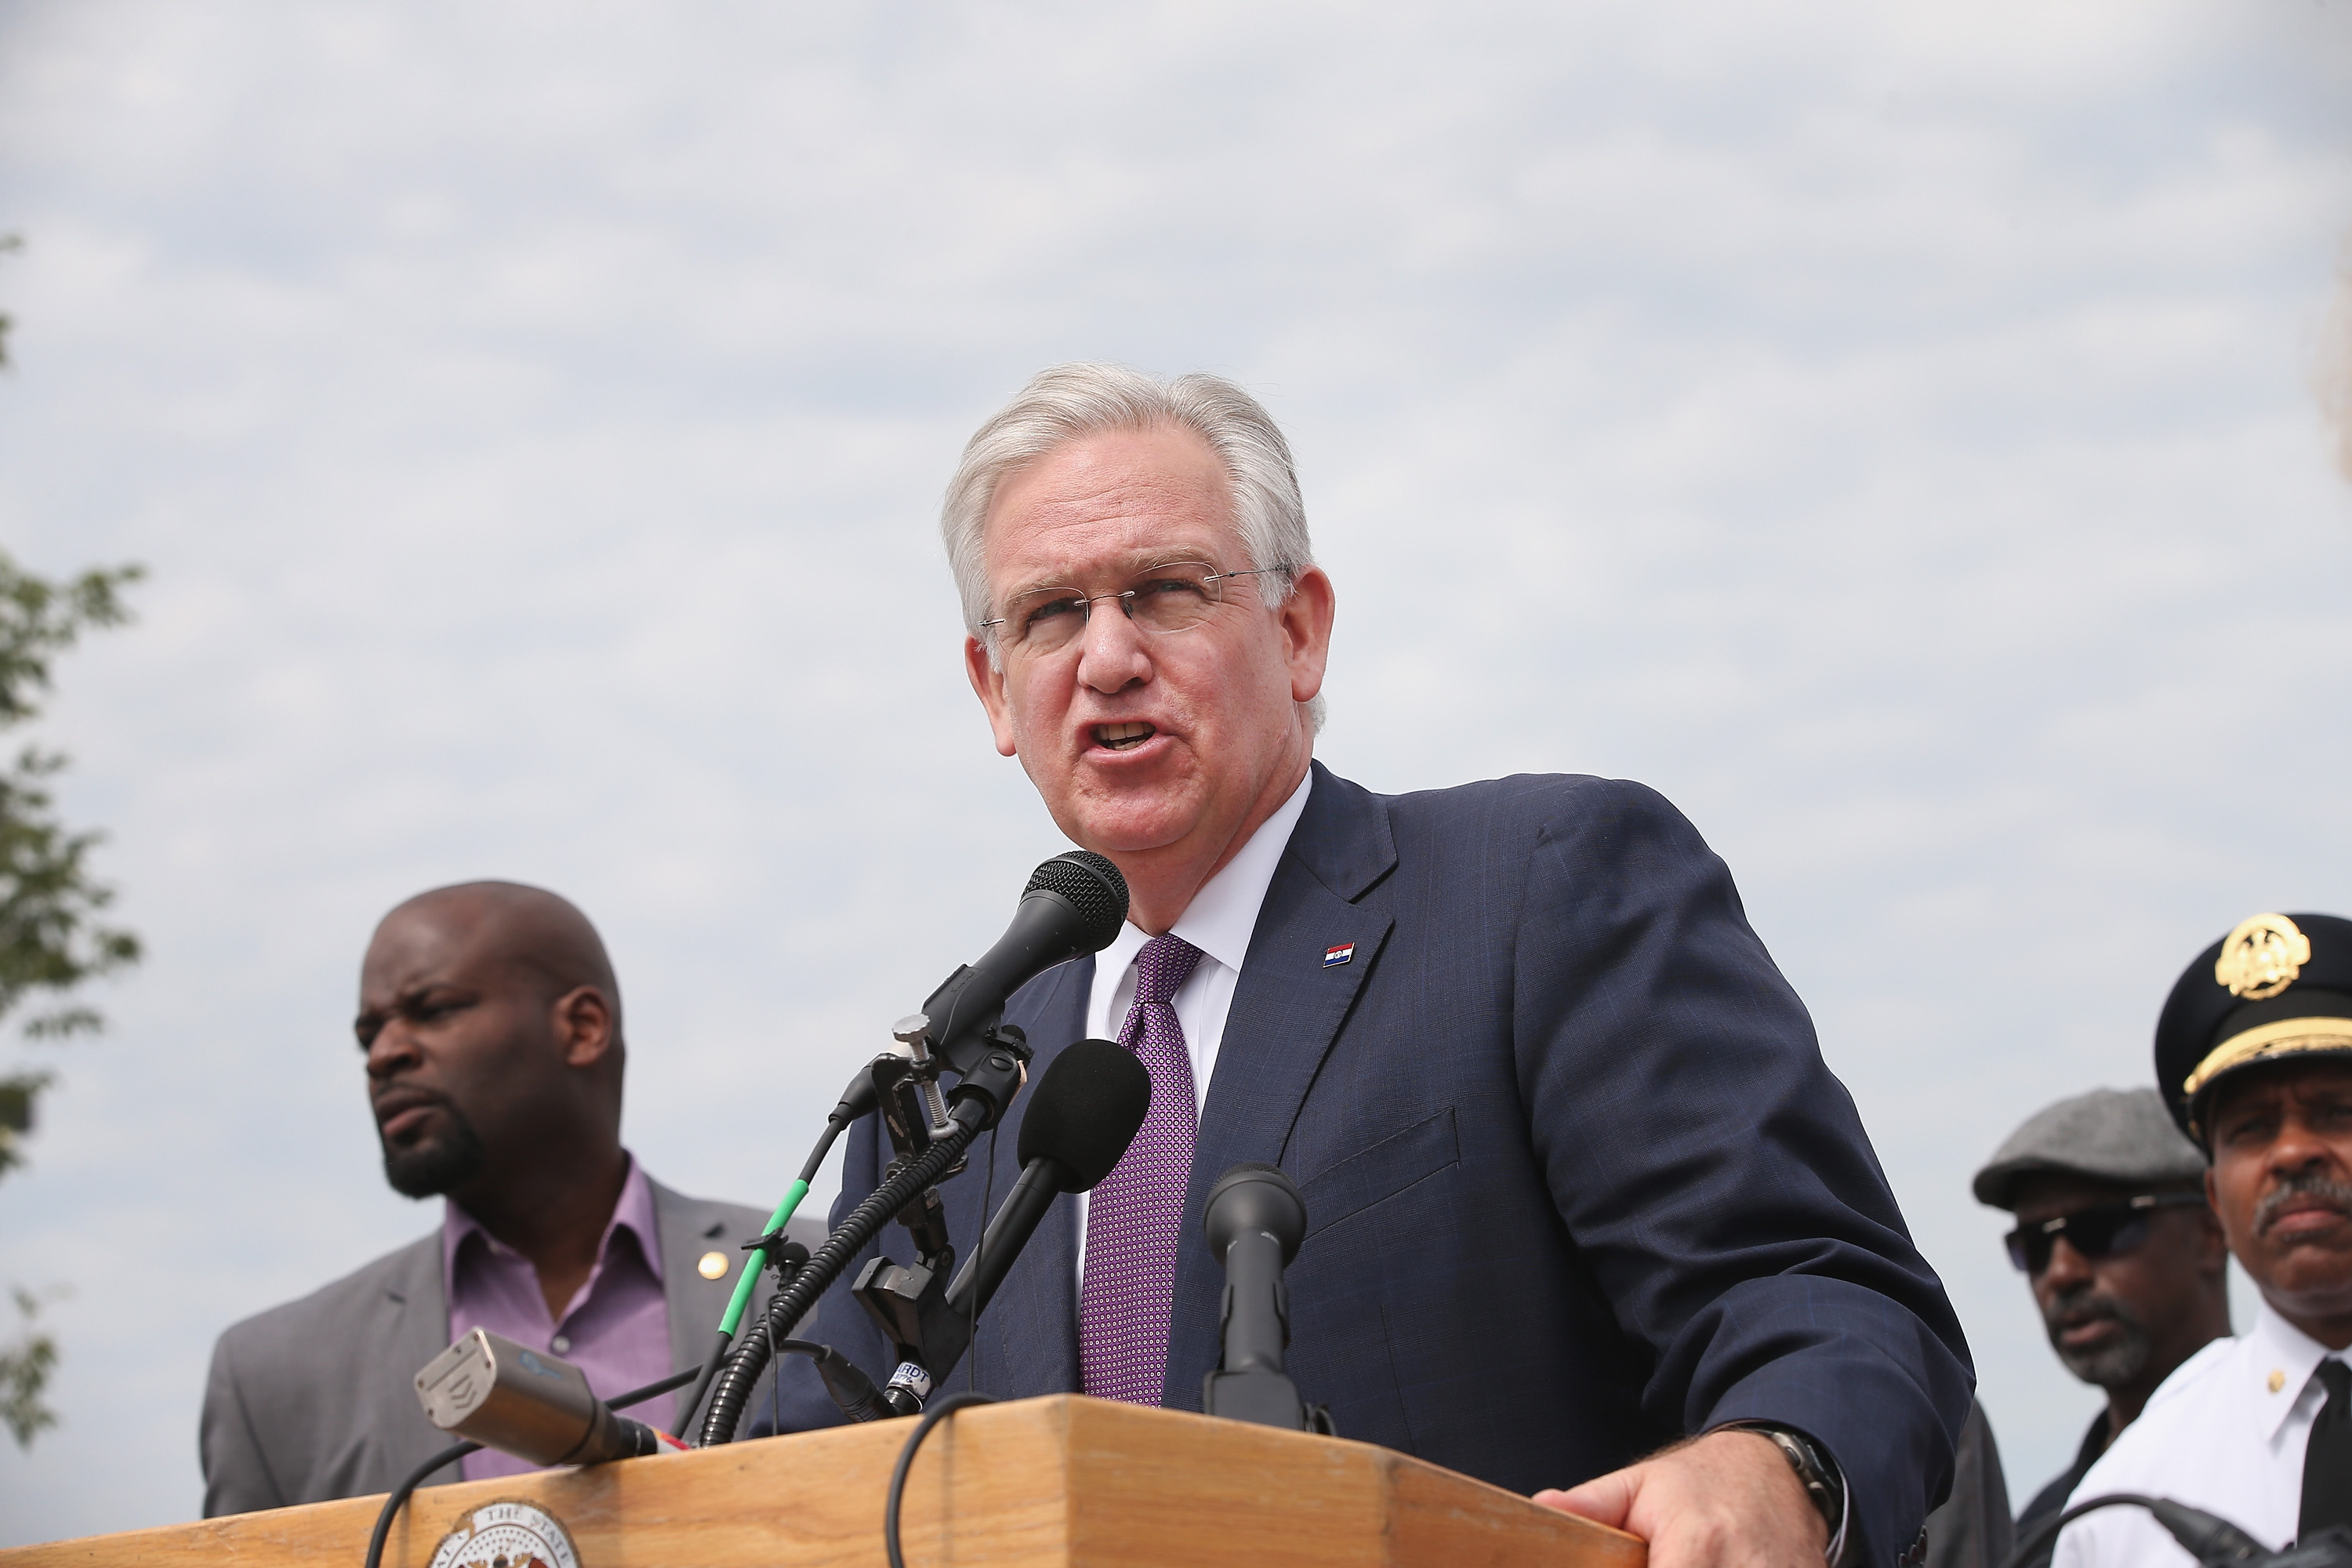 Governor Jay Nixon of Missouri speaks to the media on Aug. 15, 2014 in St. Louis, Missouri.